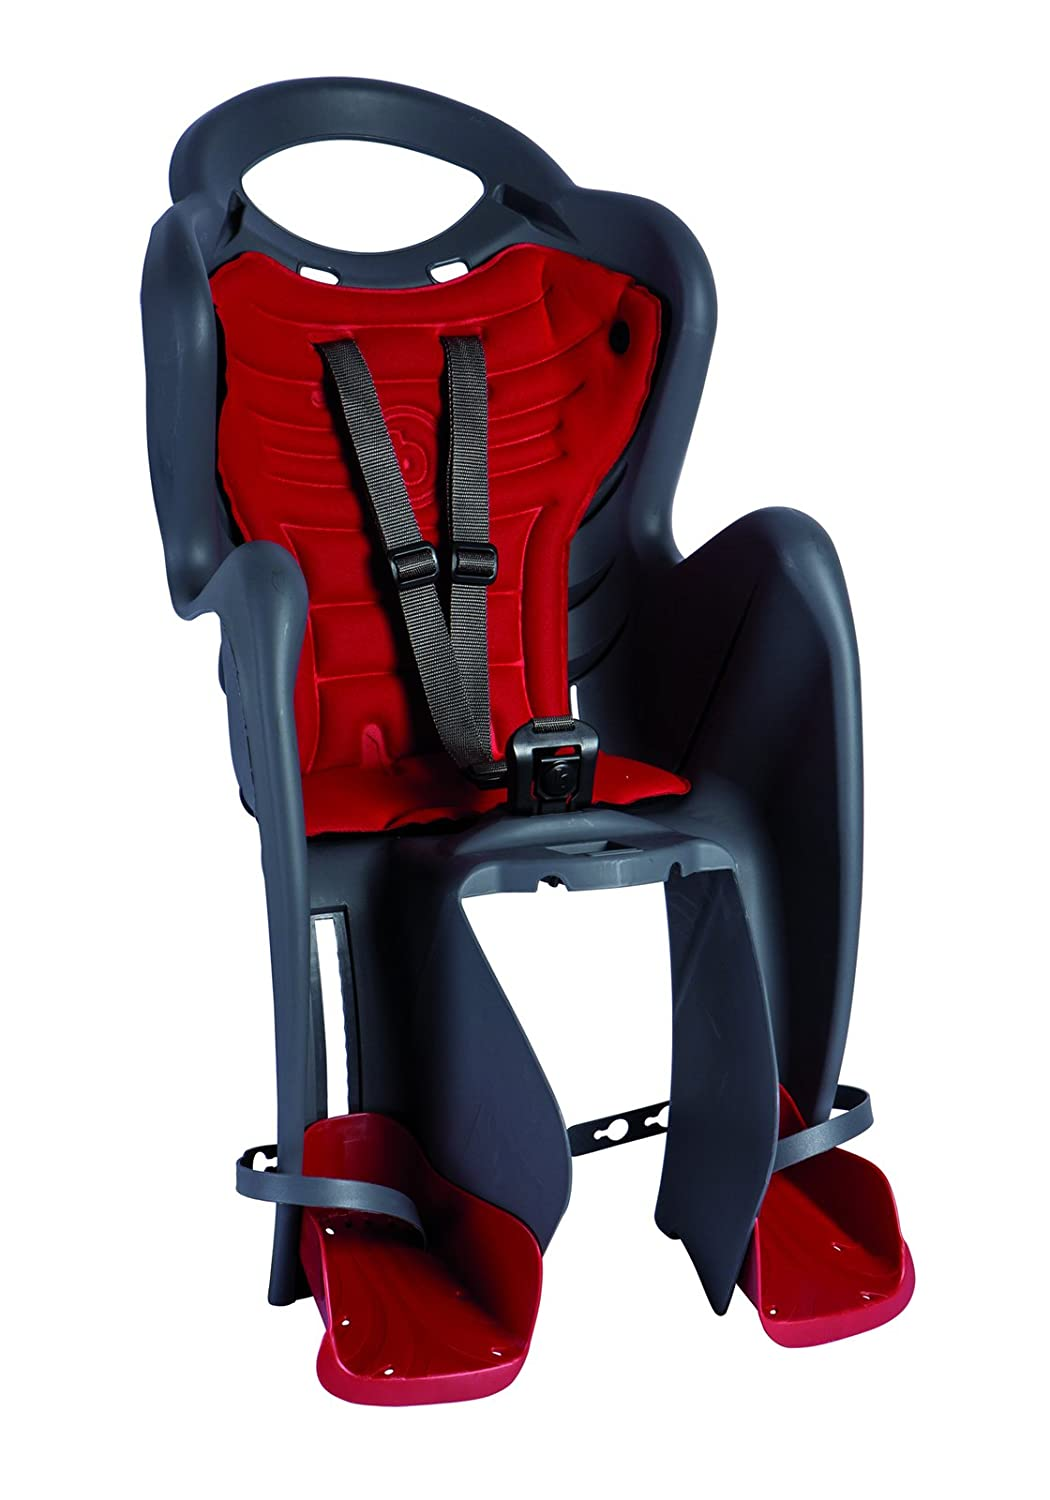 Italian Made with Certified Safety Standards Black BELLELLI Mr Fox Standard Rear Bike Child Seat